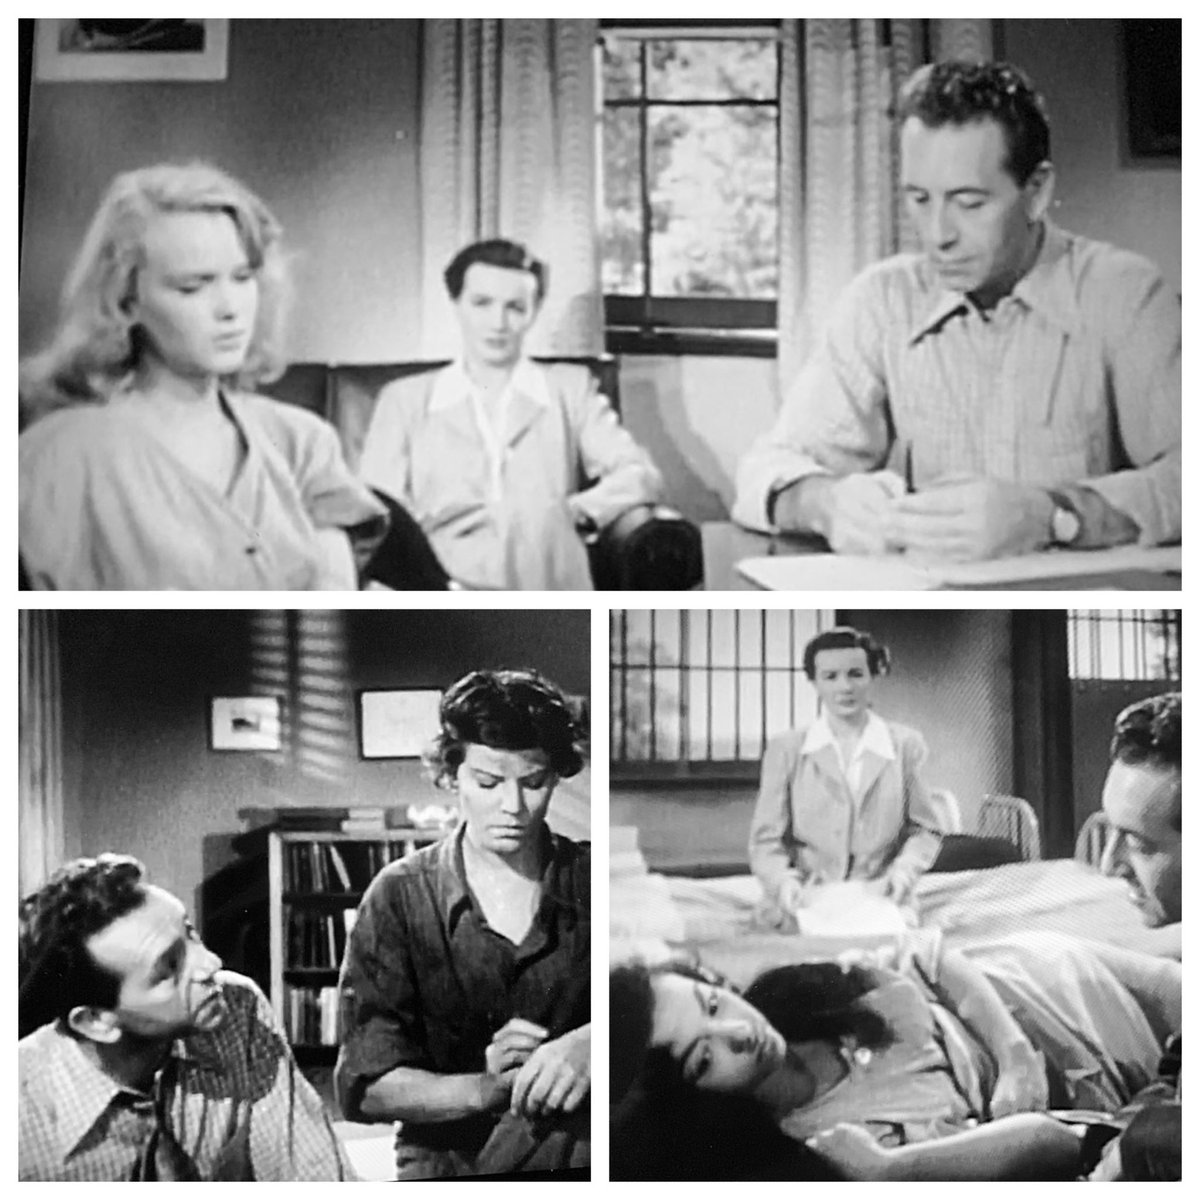 SO YOUNG SO BAD-1949. Three young ladies had very wonderful. long careers after being discovered by #PaulHenreid for this film, #AnneFrancis #AnneJackson ,Rosita Moreno (Rita)..They were terrific in this film. SYSB is up on @PrimeVideo to stream! #RitaMoreno #ClassicFilm<br>http://pic.twitter.com/cGYNGGFWAk